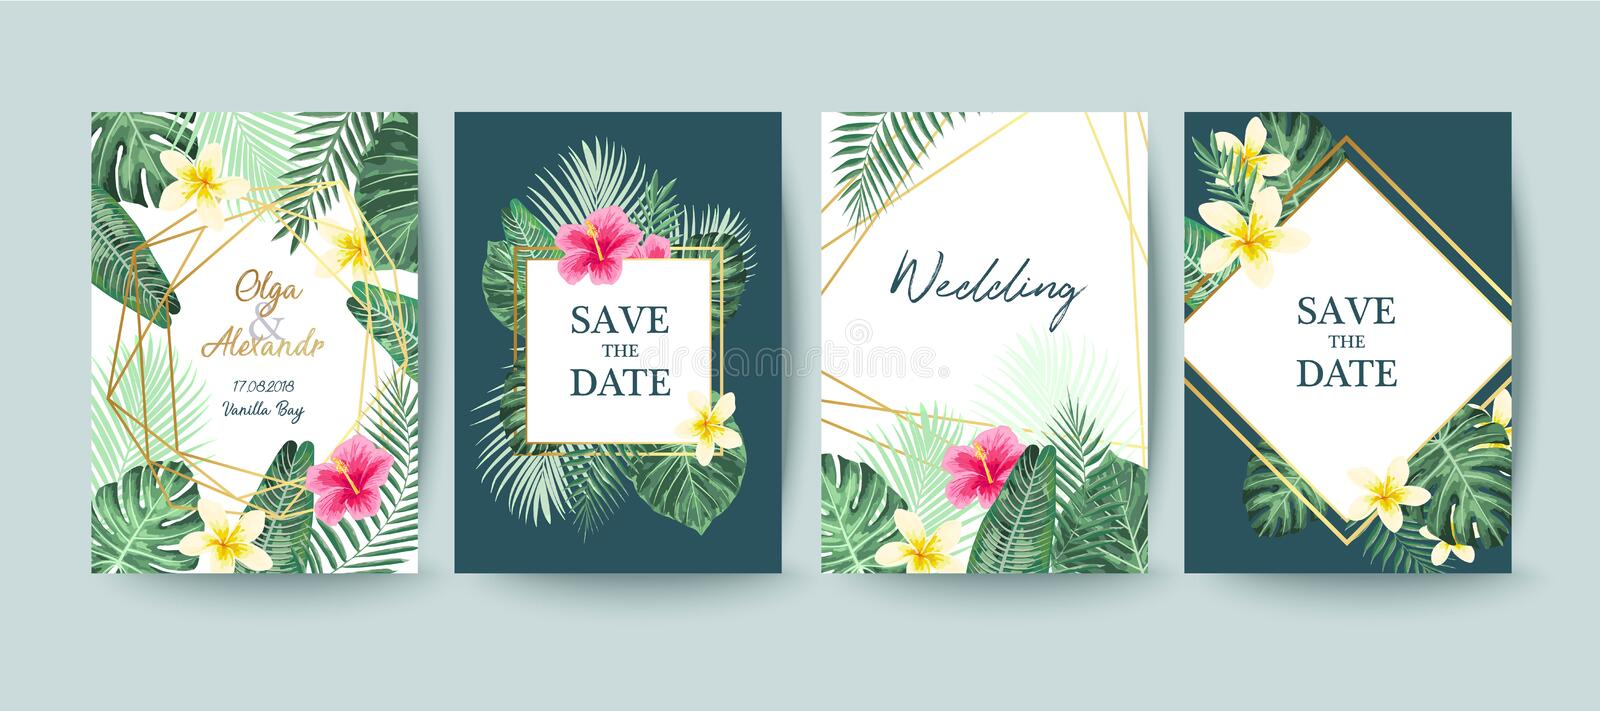 Summer card. Save the date. Palm leaves vector illustration